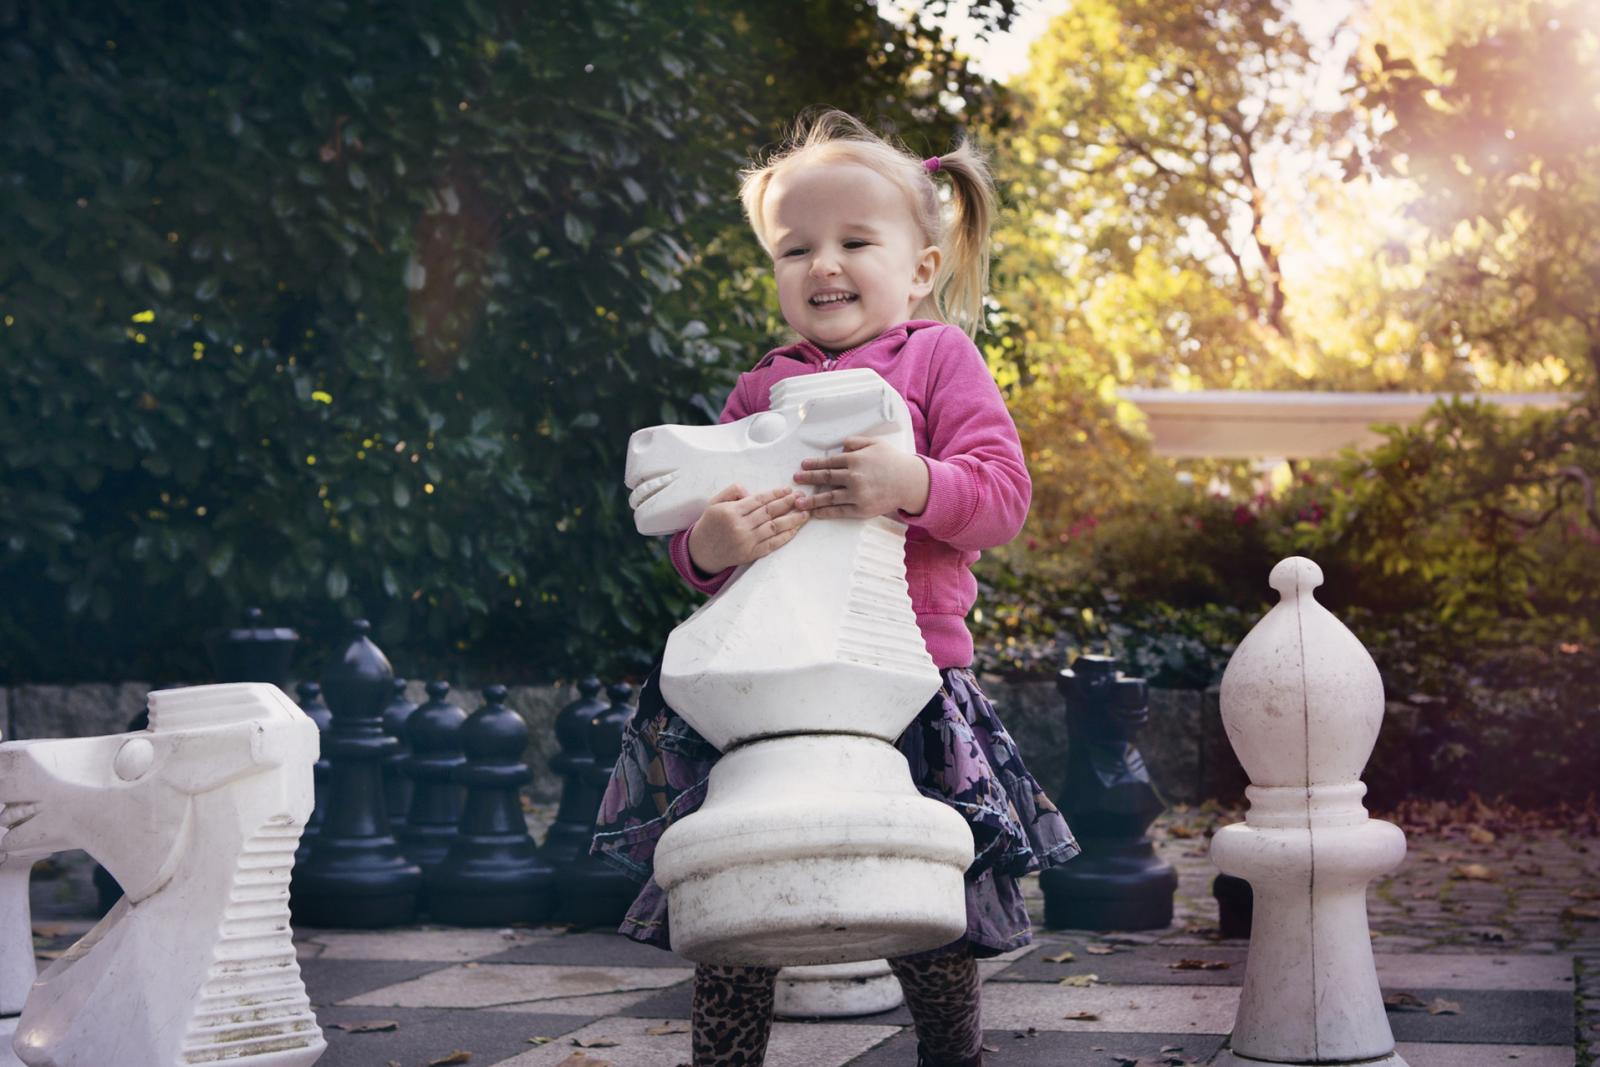 Girl playing with giant chess pieces